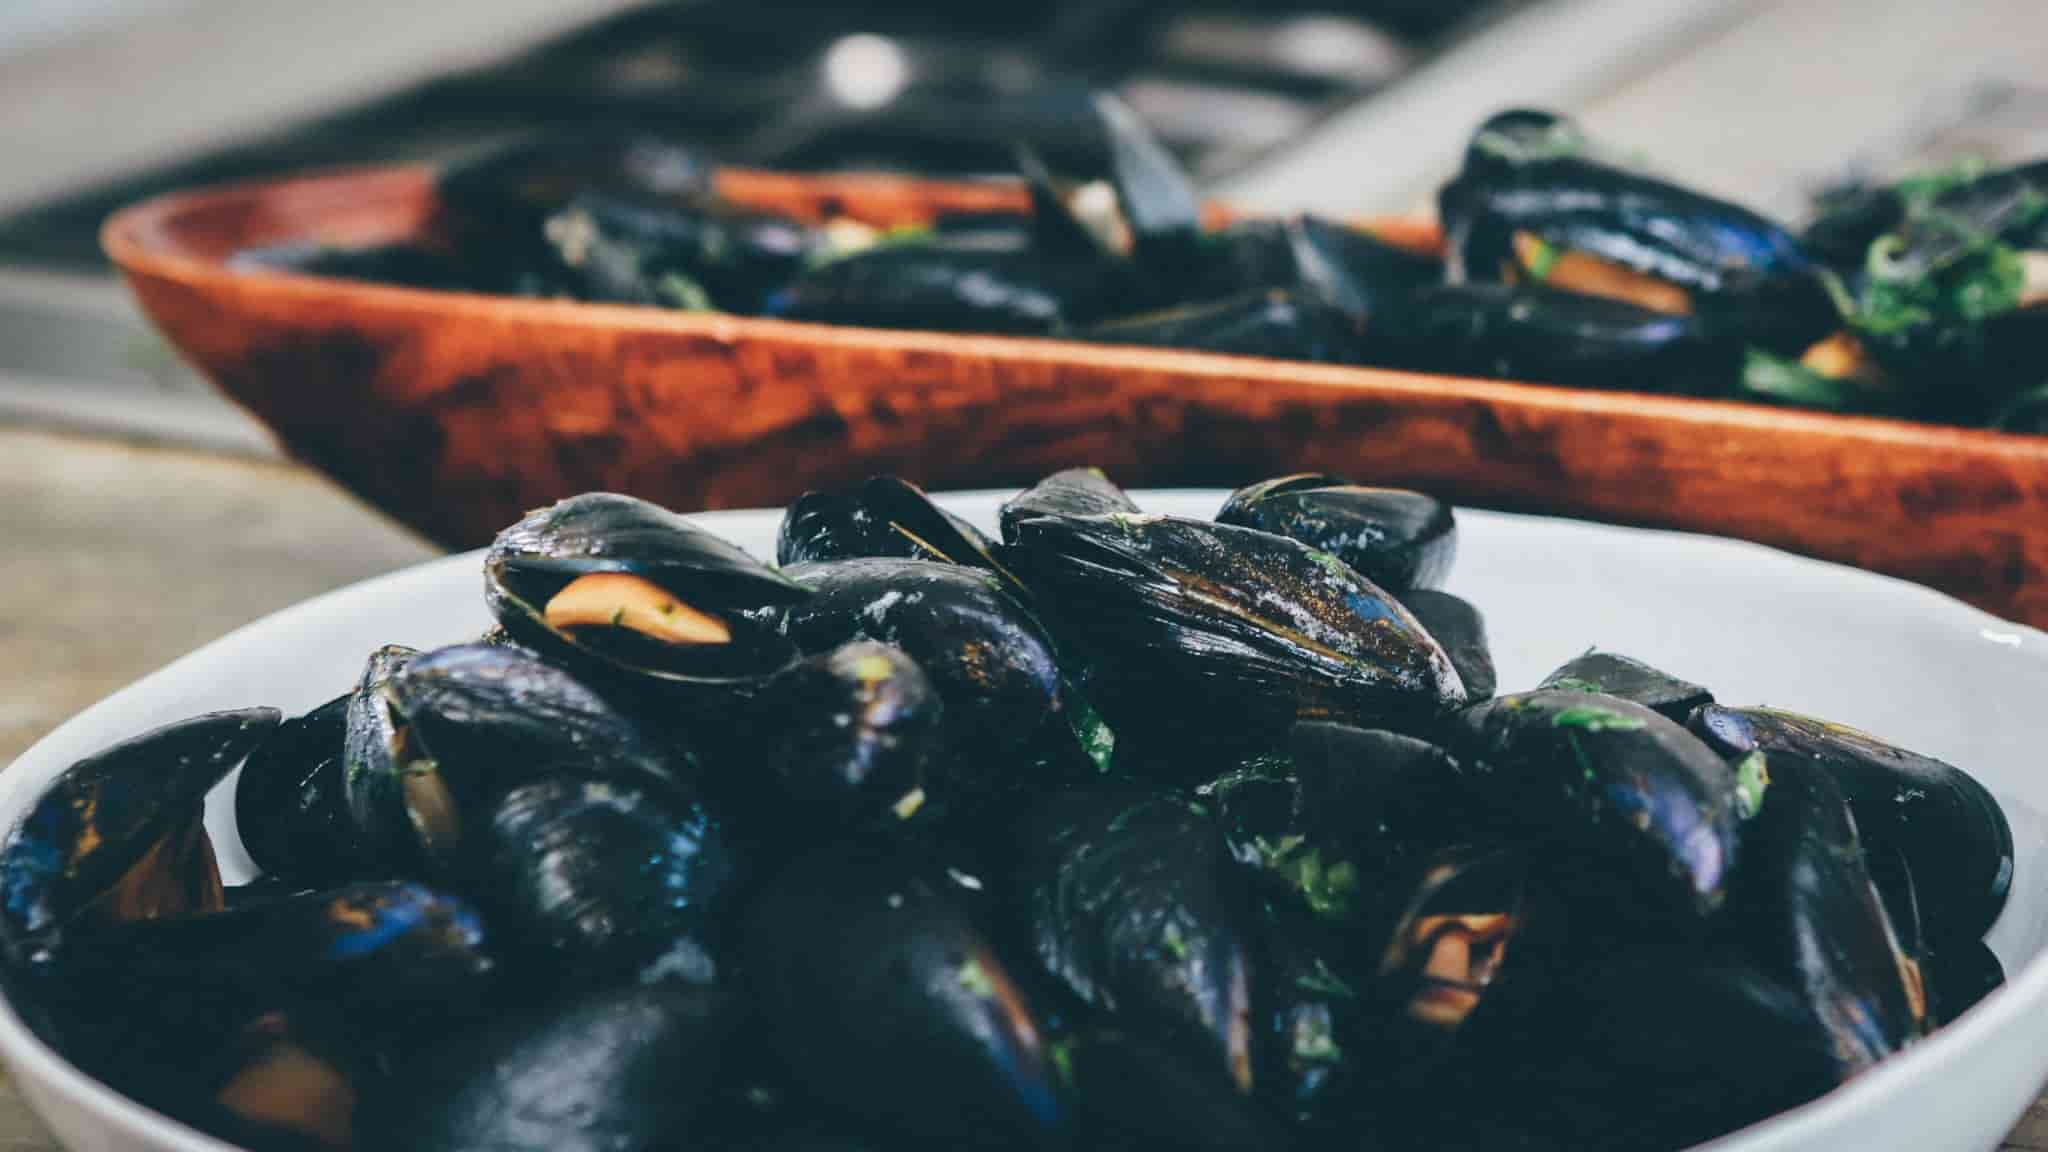 mussels in season in May - in a white bowl